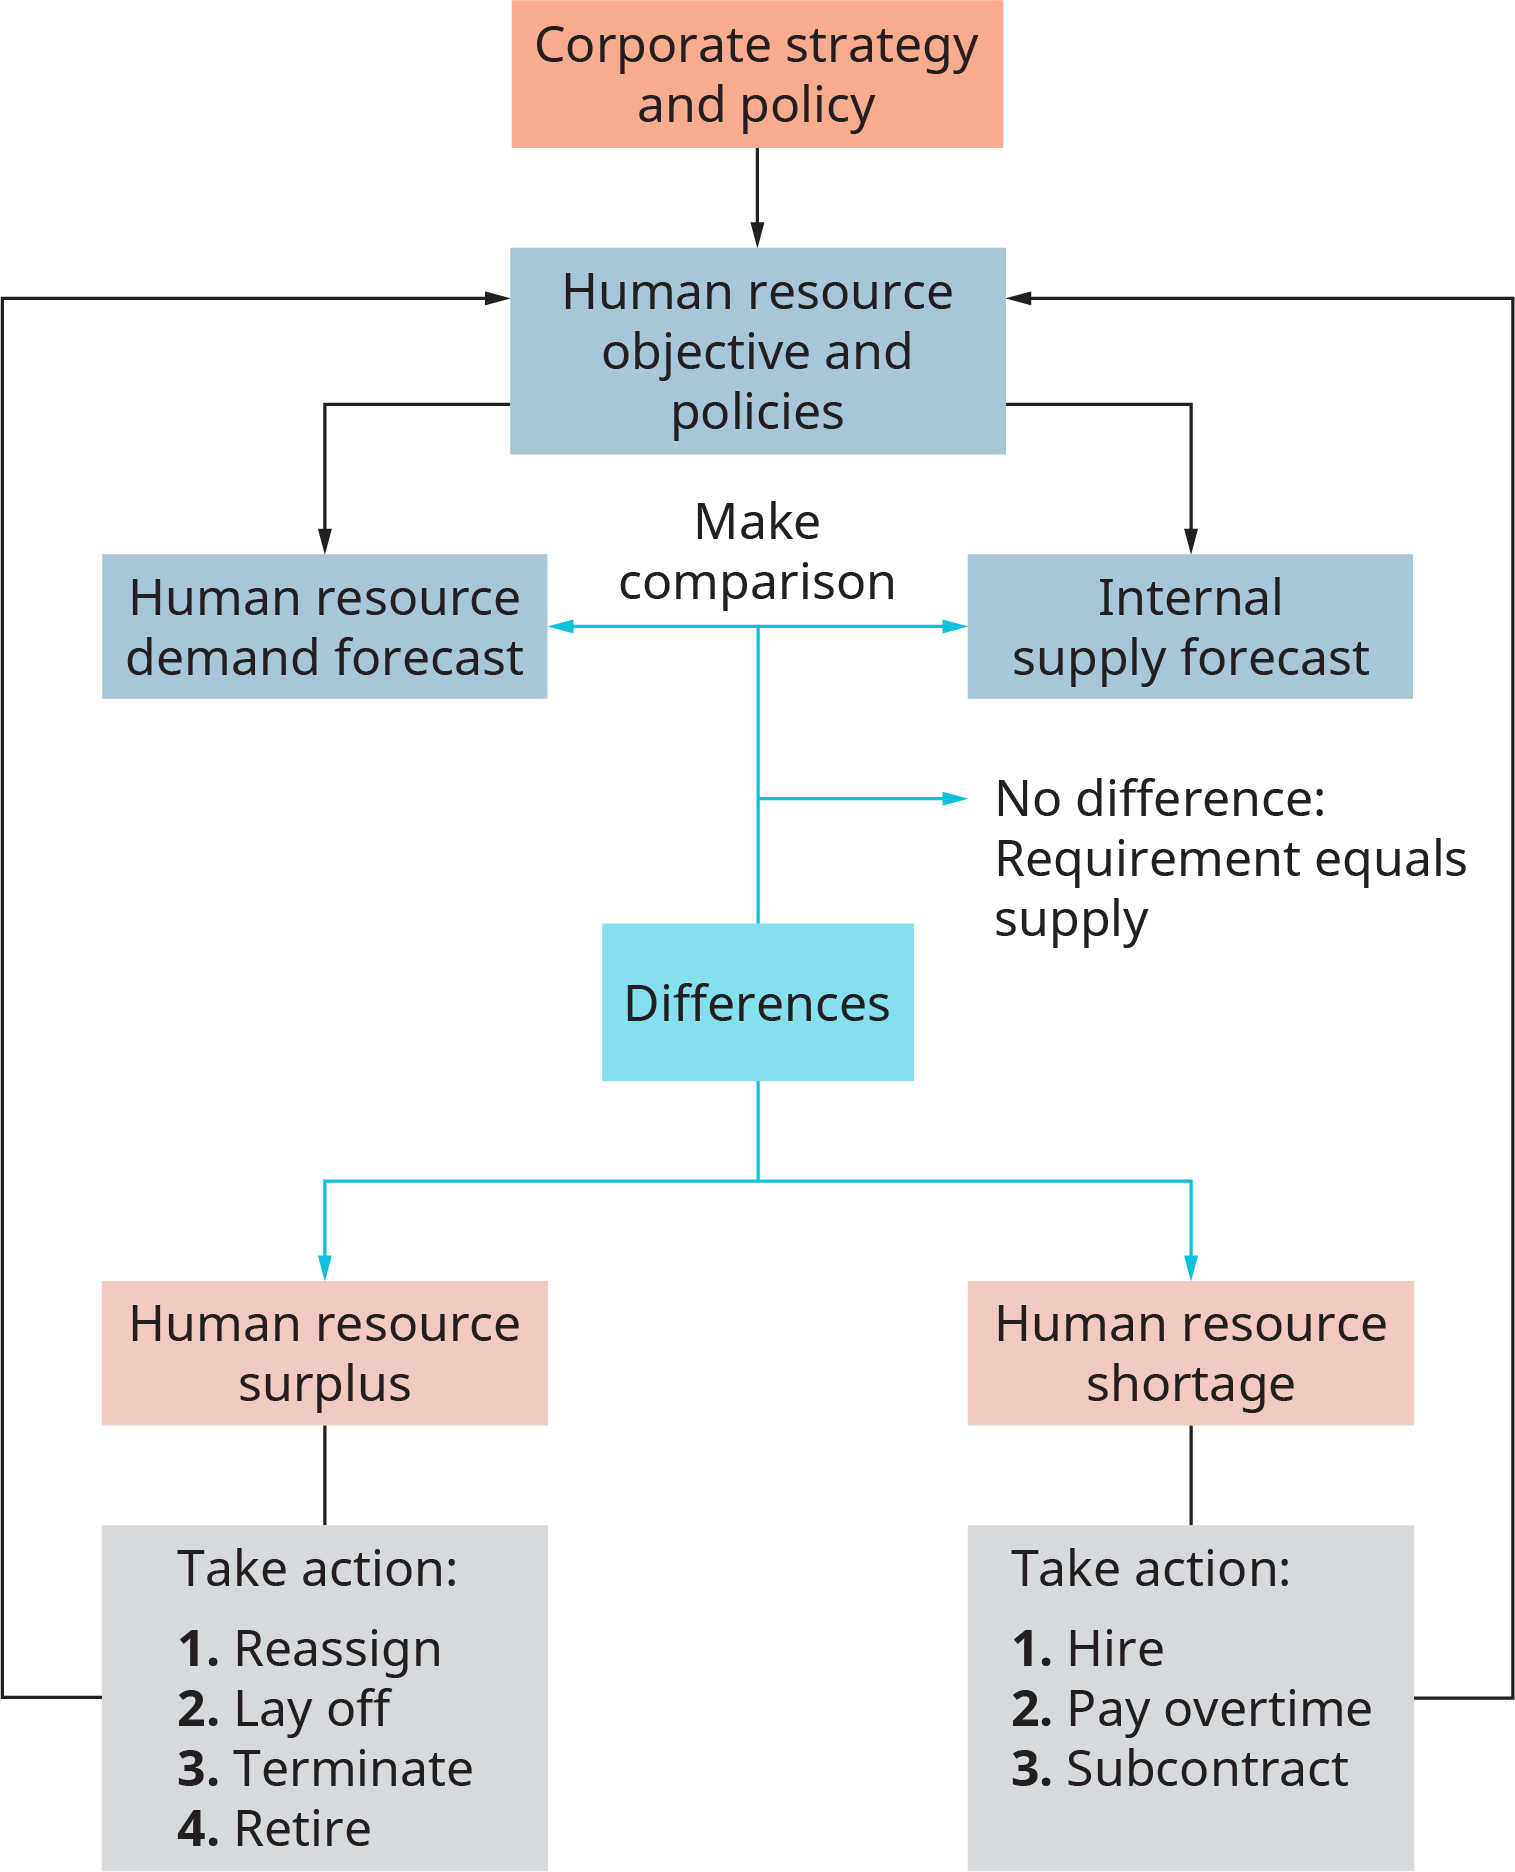 The chart starts with corporate strategy and policy, and flows into human resource objective and policies. This flows into 2 separate boxes, one labeled human resource demand forecast, and the other labeled internal supply forecast. The chart says to make a comparison between these two forecasts. From this comparison, the process flows into a box labeled, differences. A note reads, if no difference, requirement equals supply. From differences, the process flows into two separate boxes, one labeled human resource surplus, and the other labeled human resource shortage. From human resource surplus, the process flows into a box labeled, take action. 1, reassign. 2 lay off. 3 terminate. 4, retire. From human resource shortage, the process flows into a box labeled, take action. 1, hire. 2, pay overtime. 3, subcontract. From the take action boxes, the process flows back up into the human resource objective and policies box.